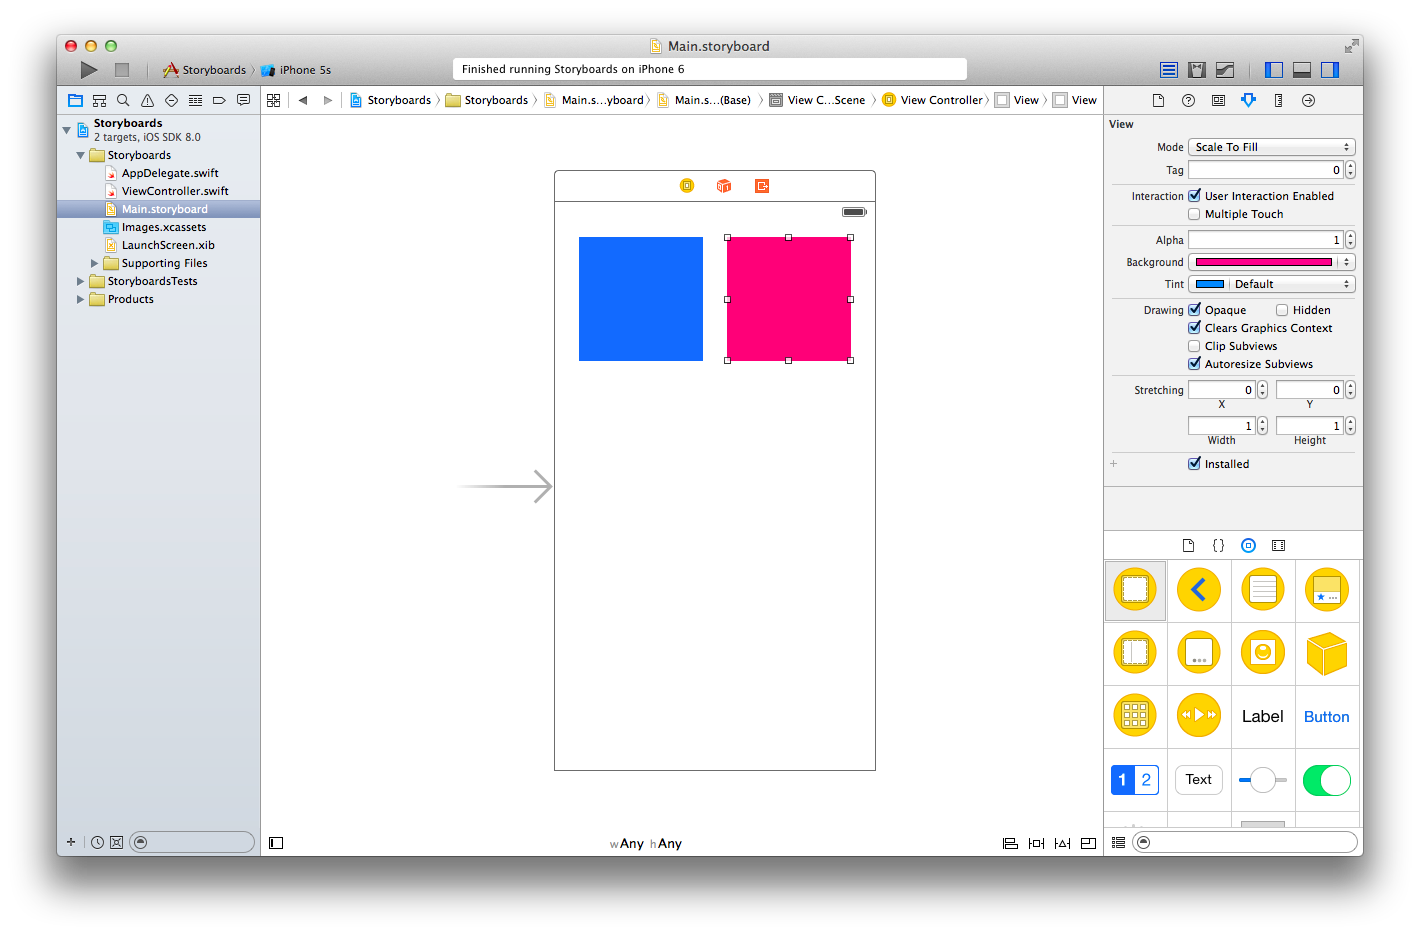 Designing Adaptive Layouts For Iphone 6 5 Logic Board Diagram When We Run The App Squares Are Laid Out Exactly Where Positioned Them In Portrait Switch Orientation To Landscape They Remain Loyal